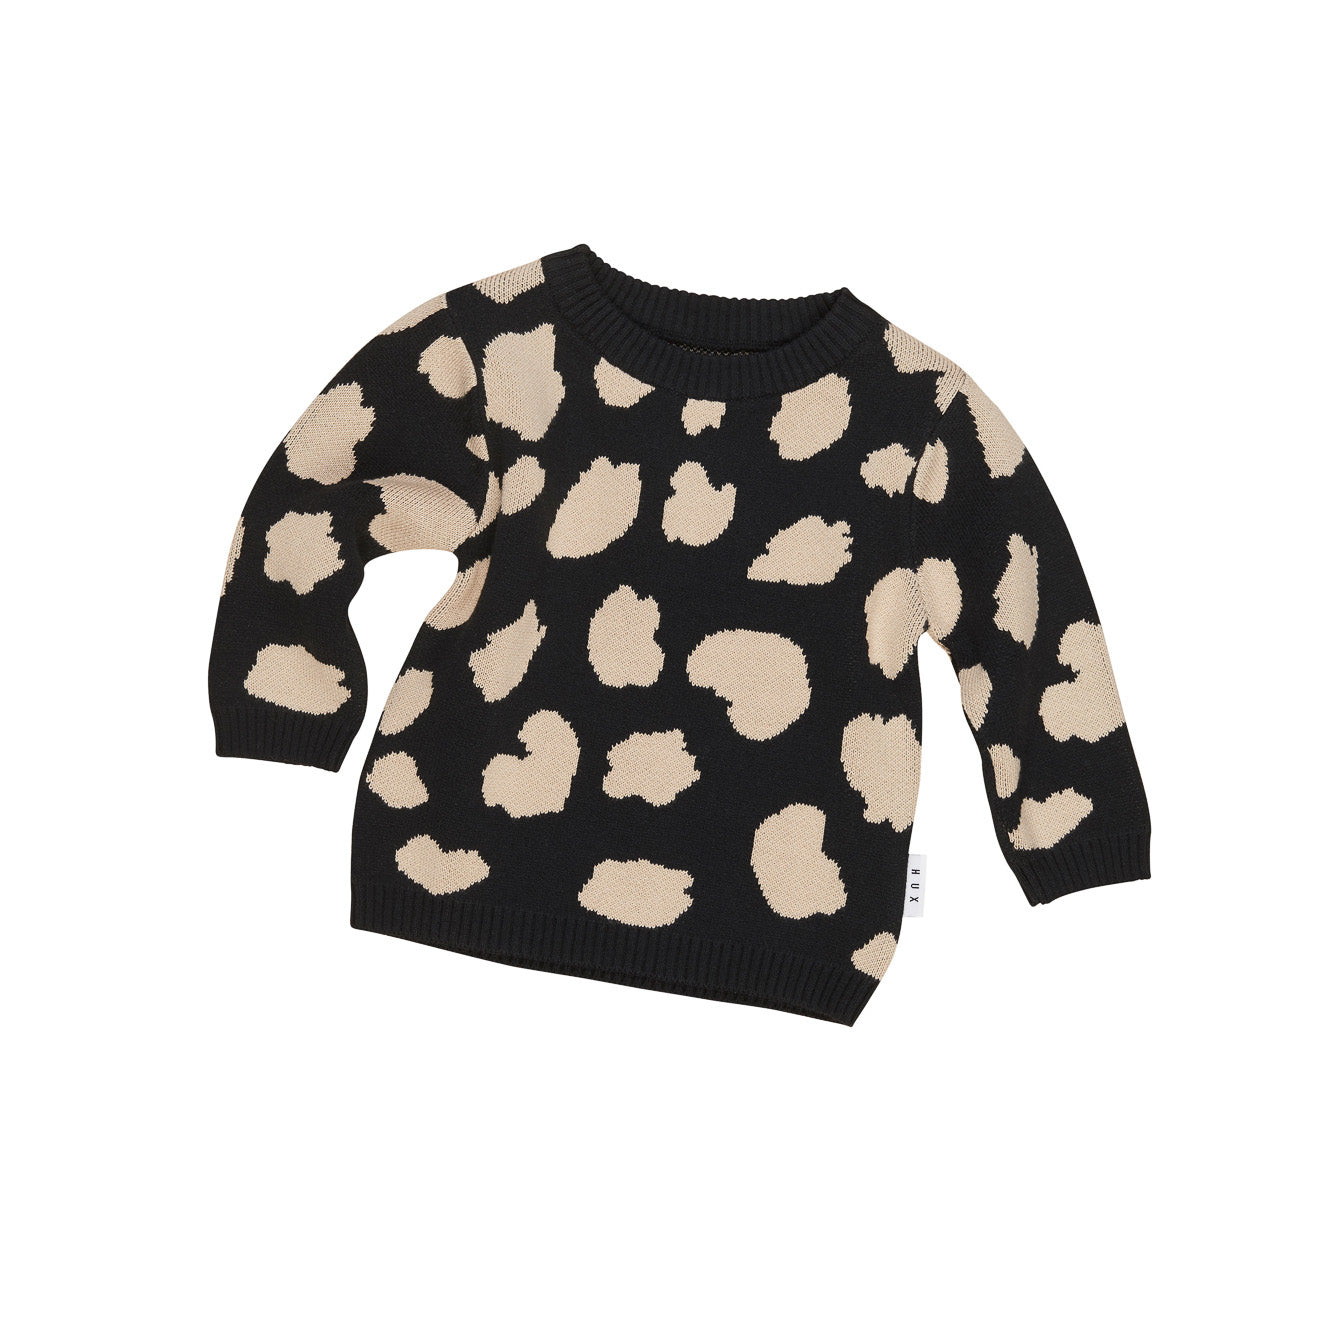 Animal Spot Knit Sweater